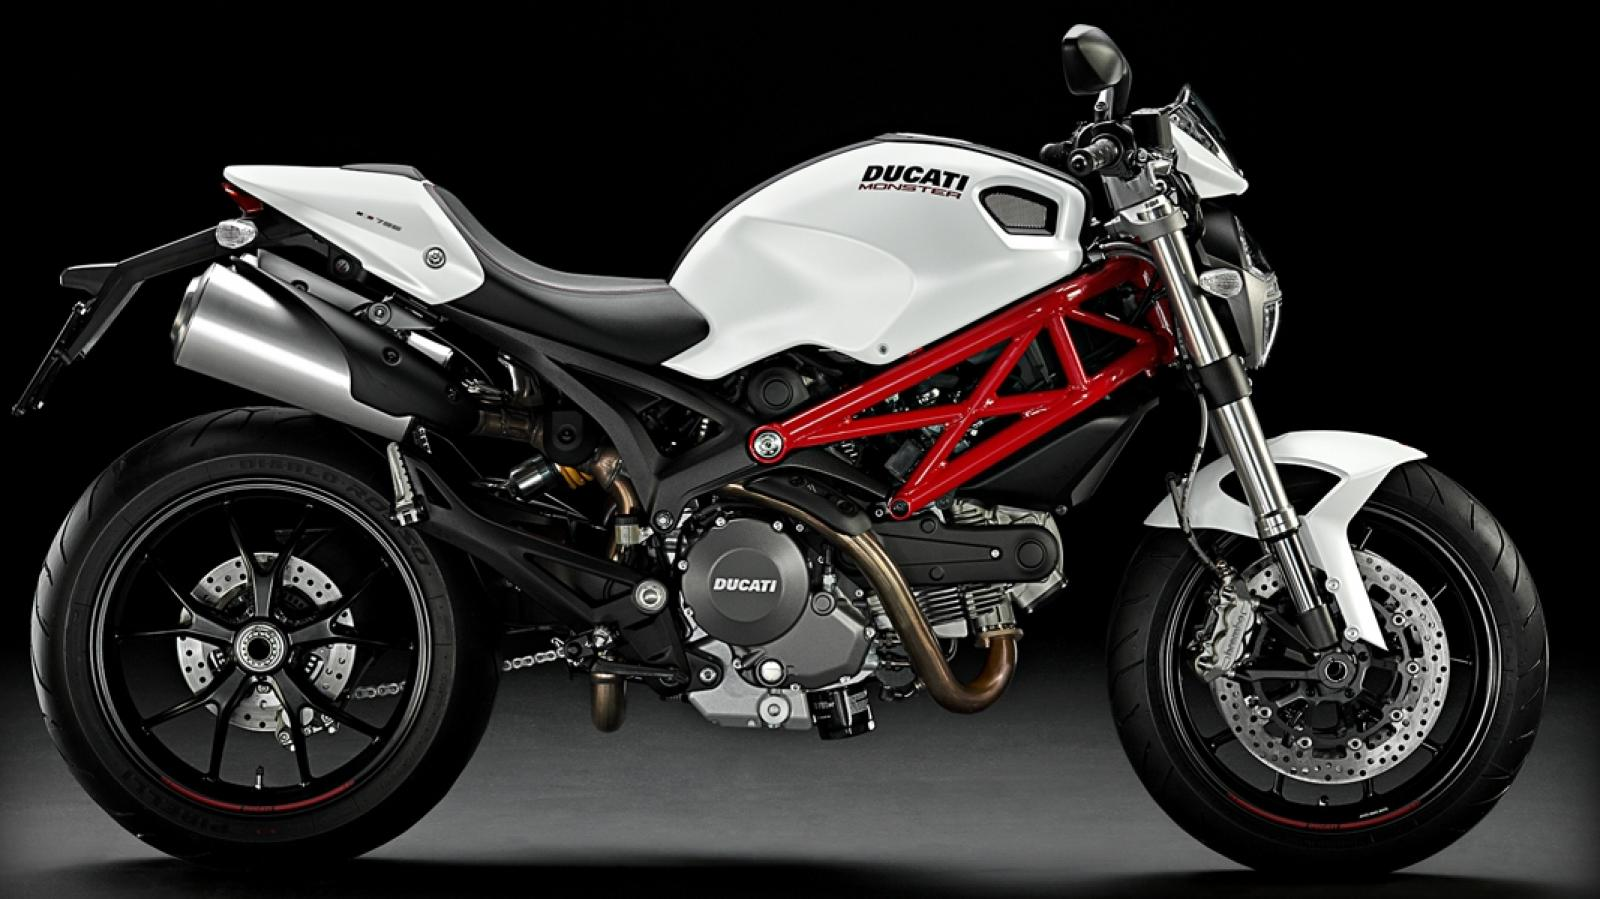 2013 ducati monster 696 20th anniversary moto zombdrive com. Black Bedroom Furniture Sets. Home Design Ideas